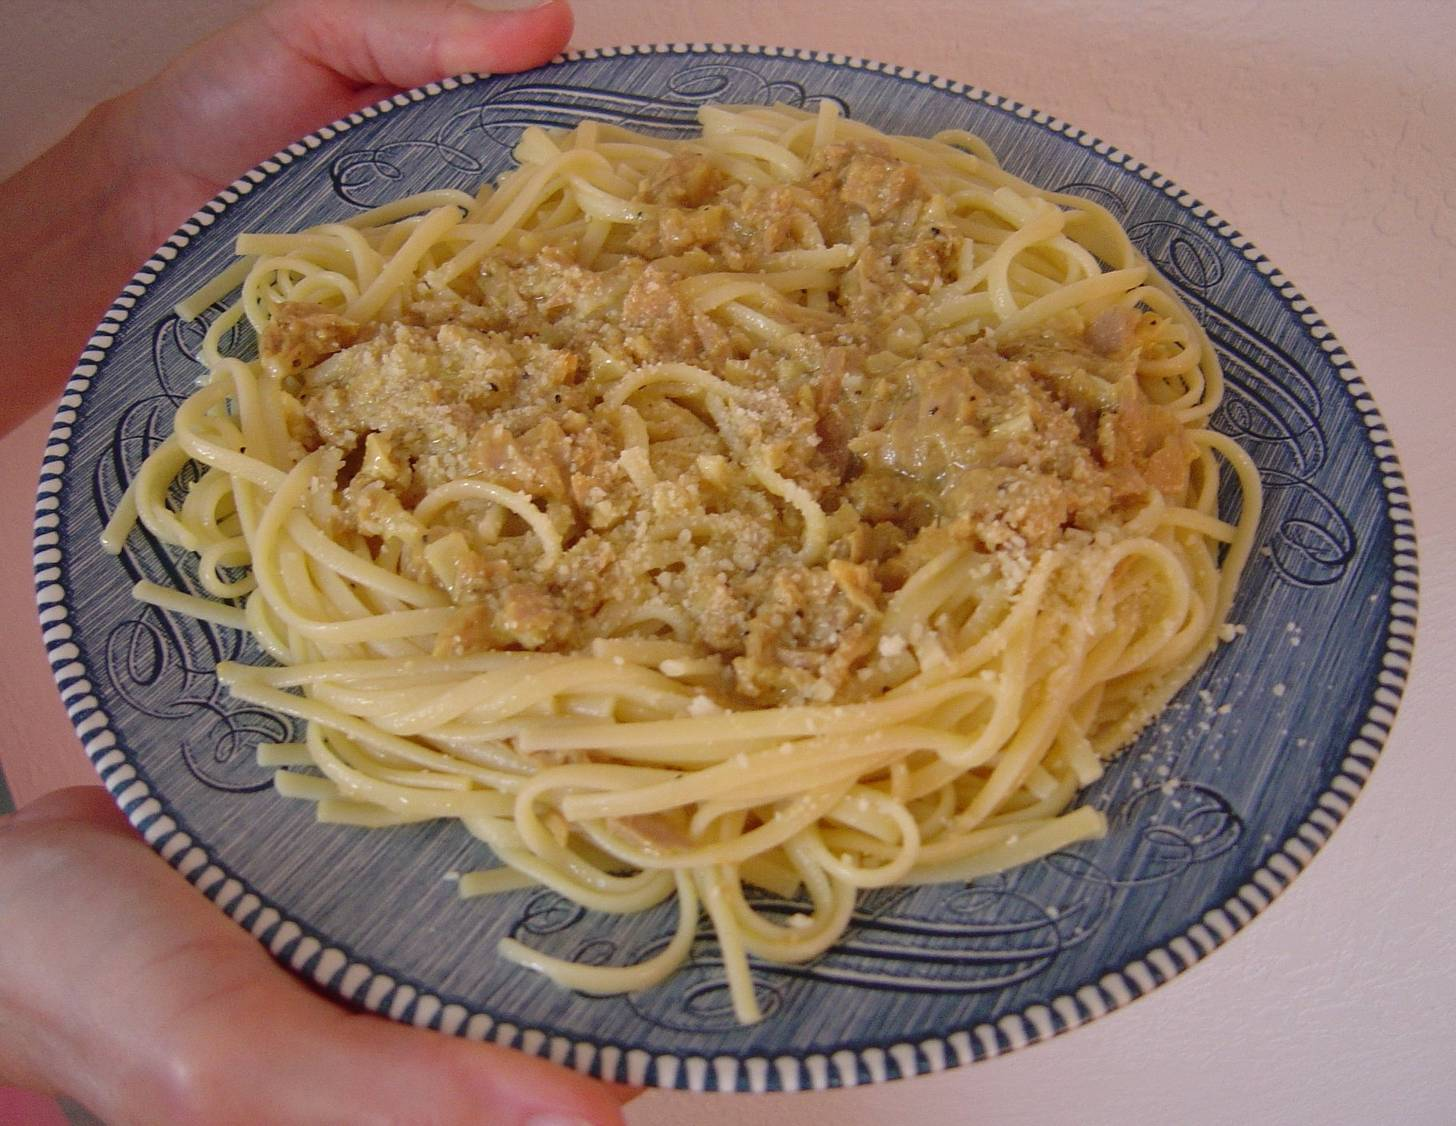 Plate of my No Work Tuna Spaghetti